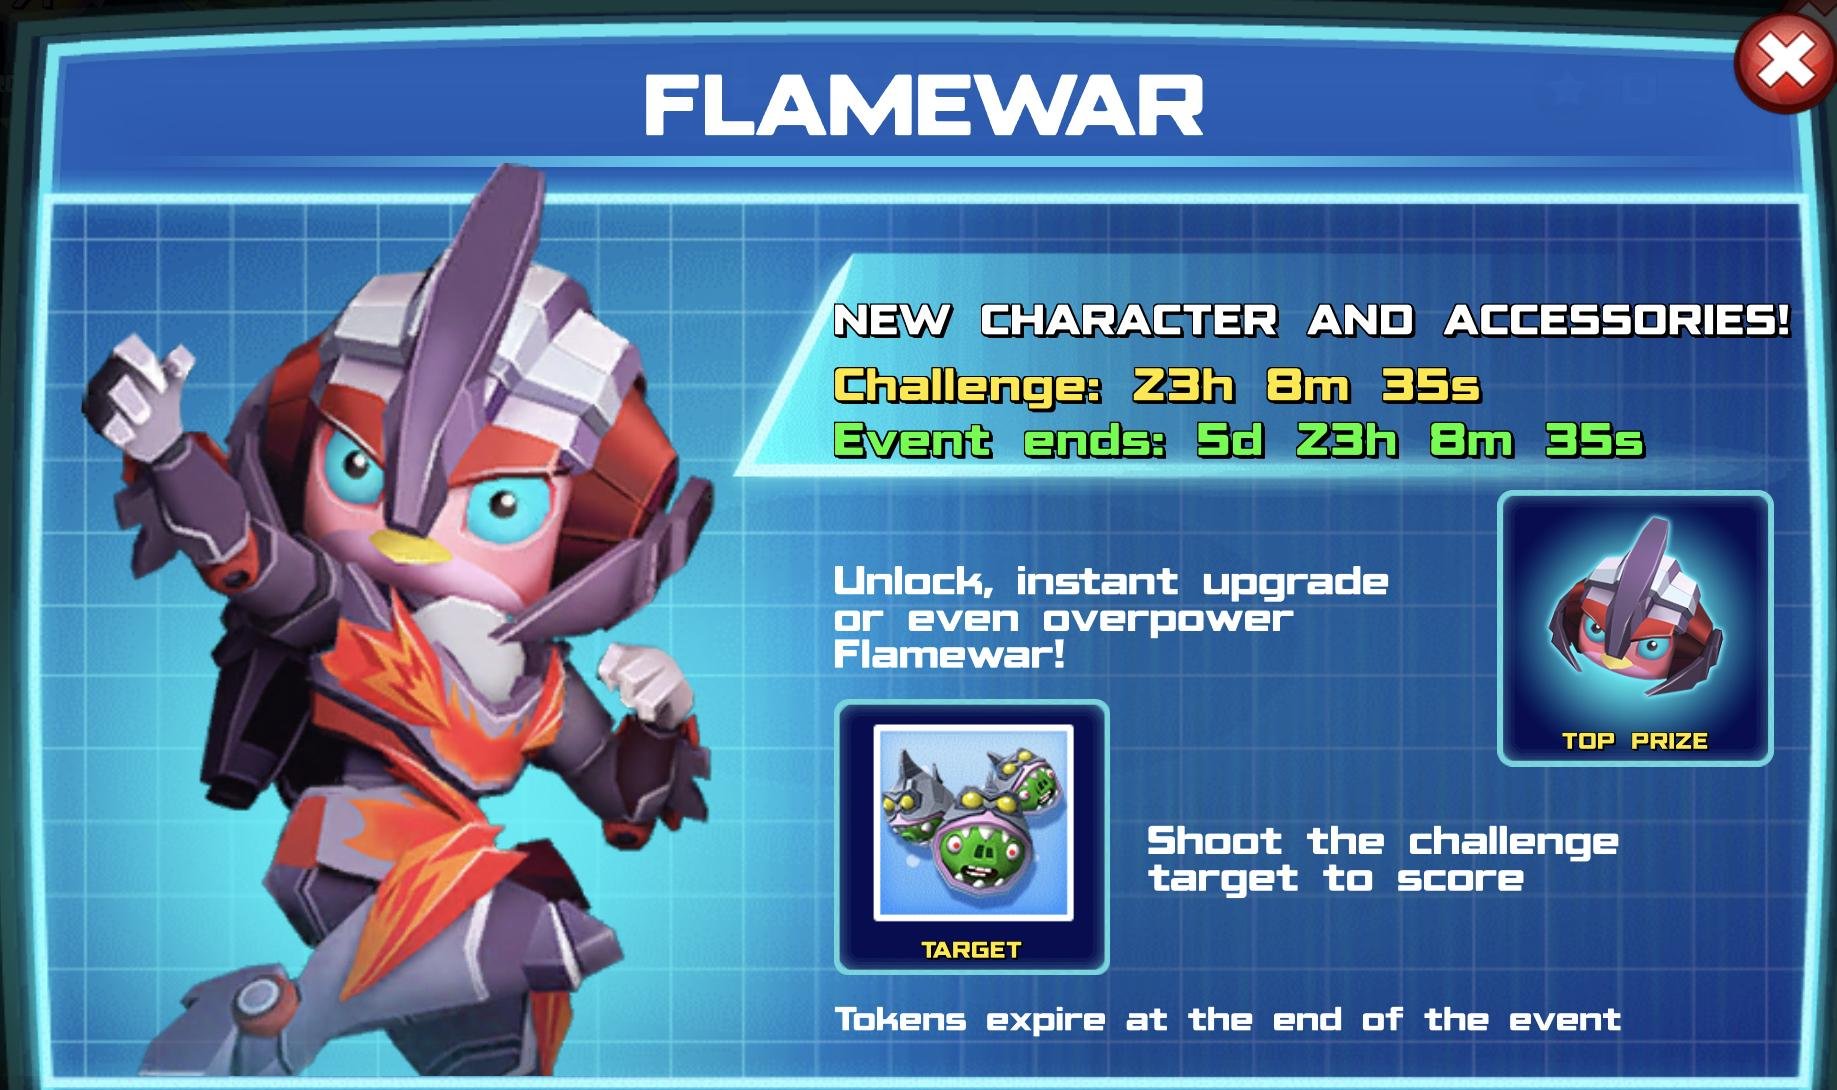 The banner for Flamewar event